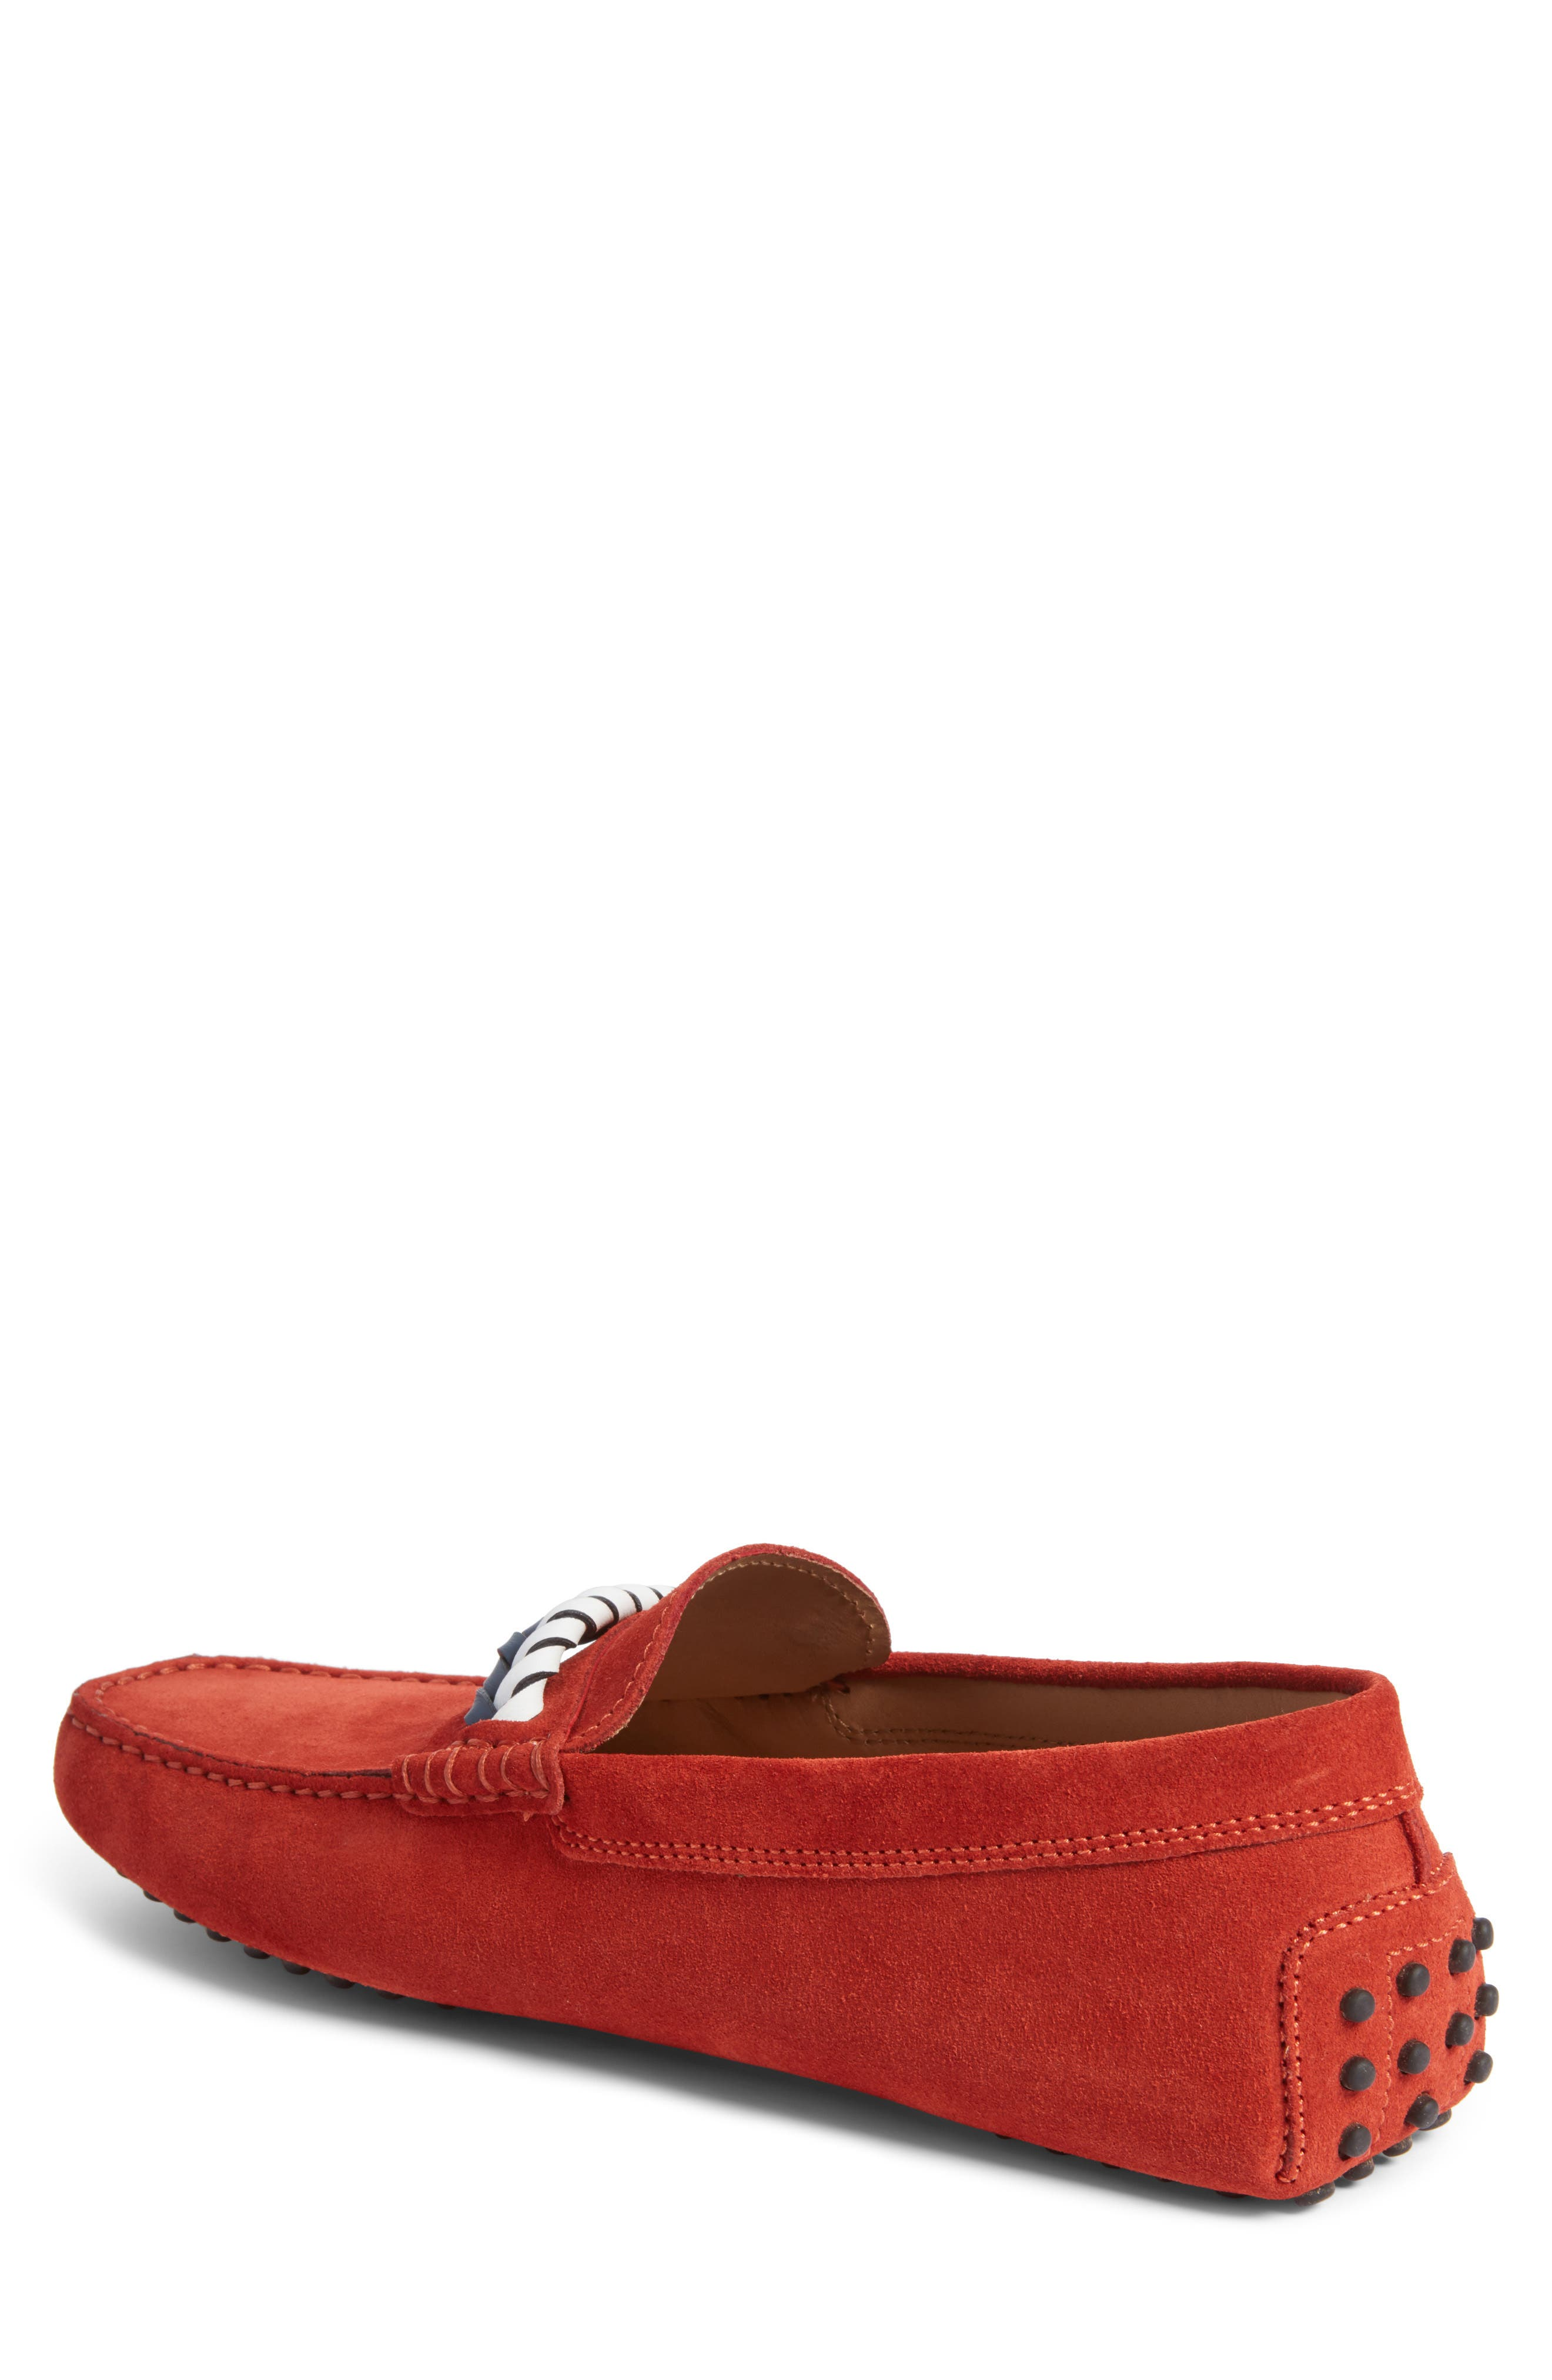 Gommini Driving Shoe,                             Alternate thumbnail 4, color,